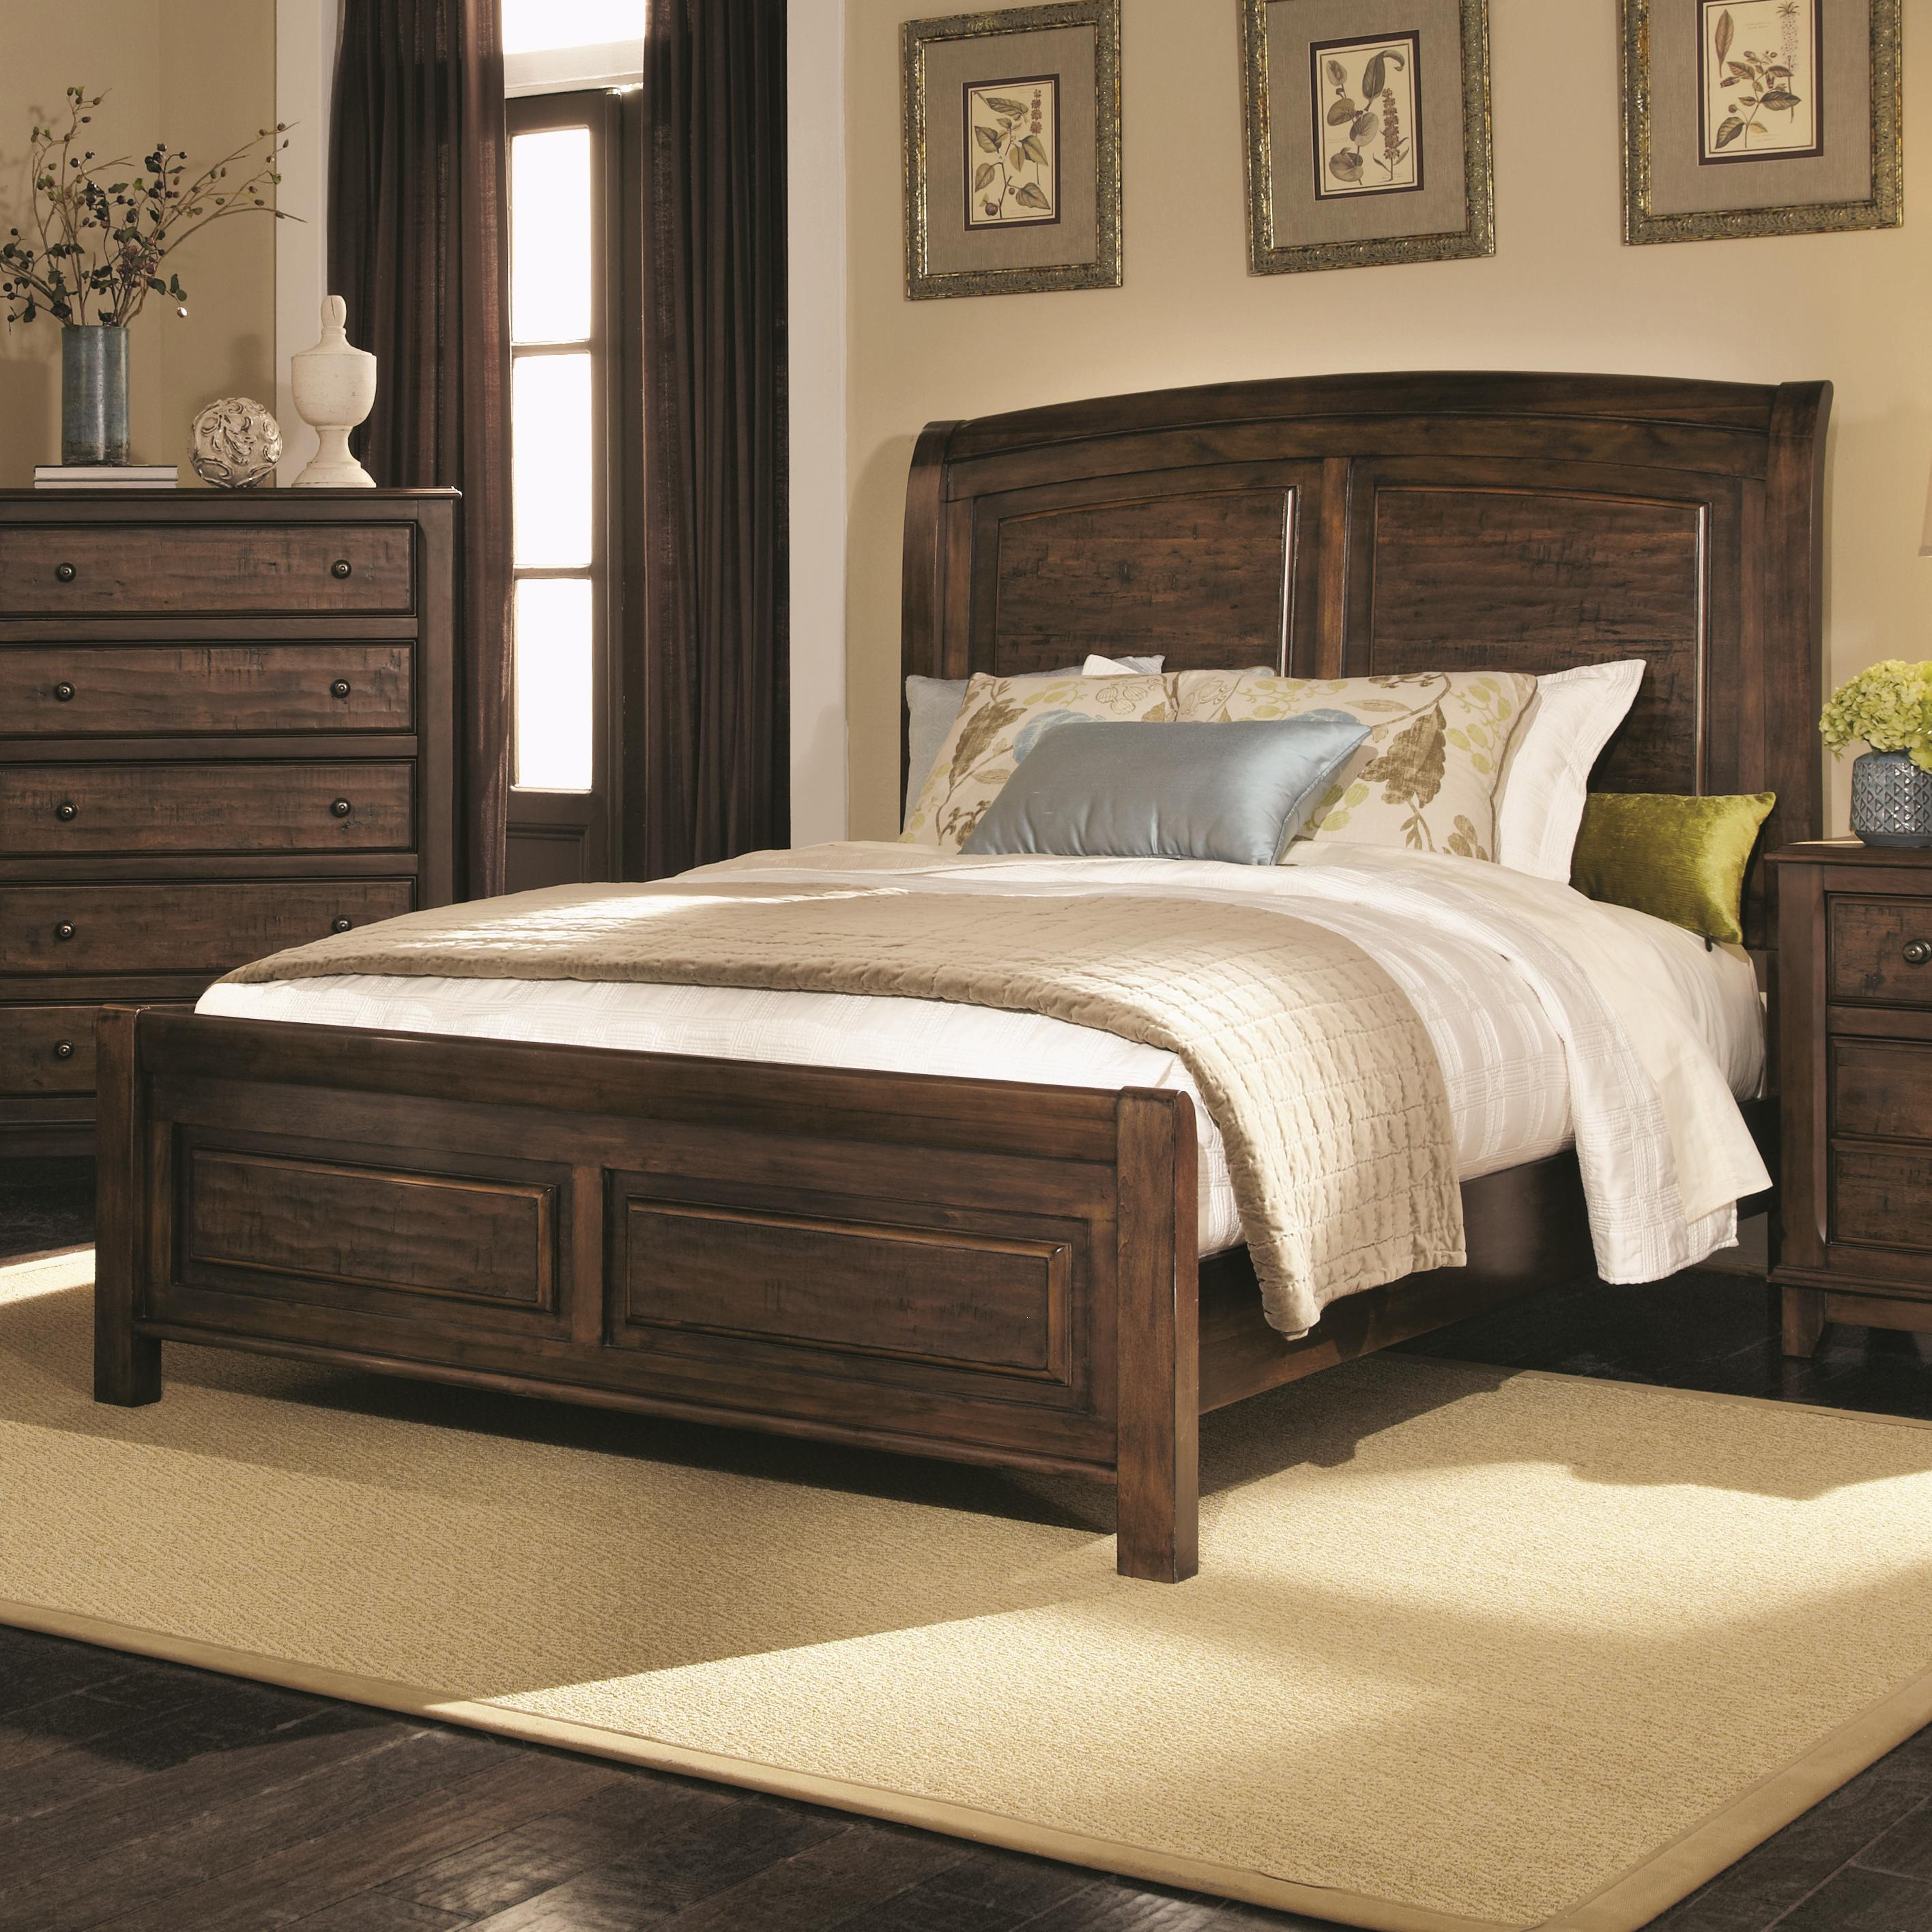 Coaster Laughton Casual King Sleigh Bed A1 Furniture Mattress Panel Beds